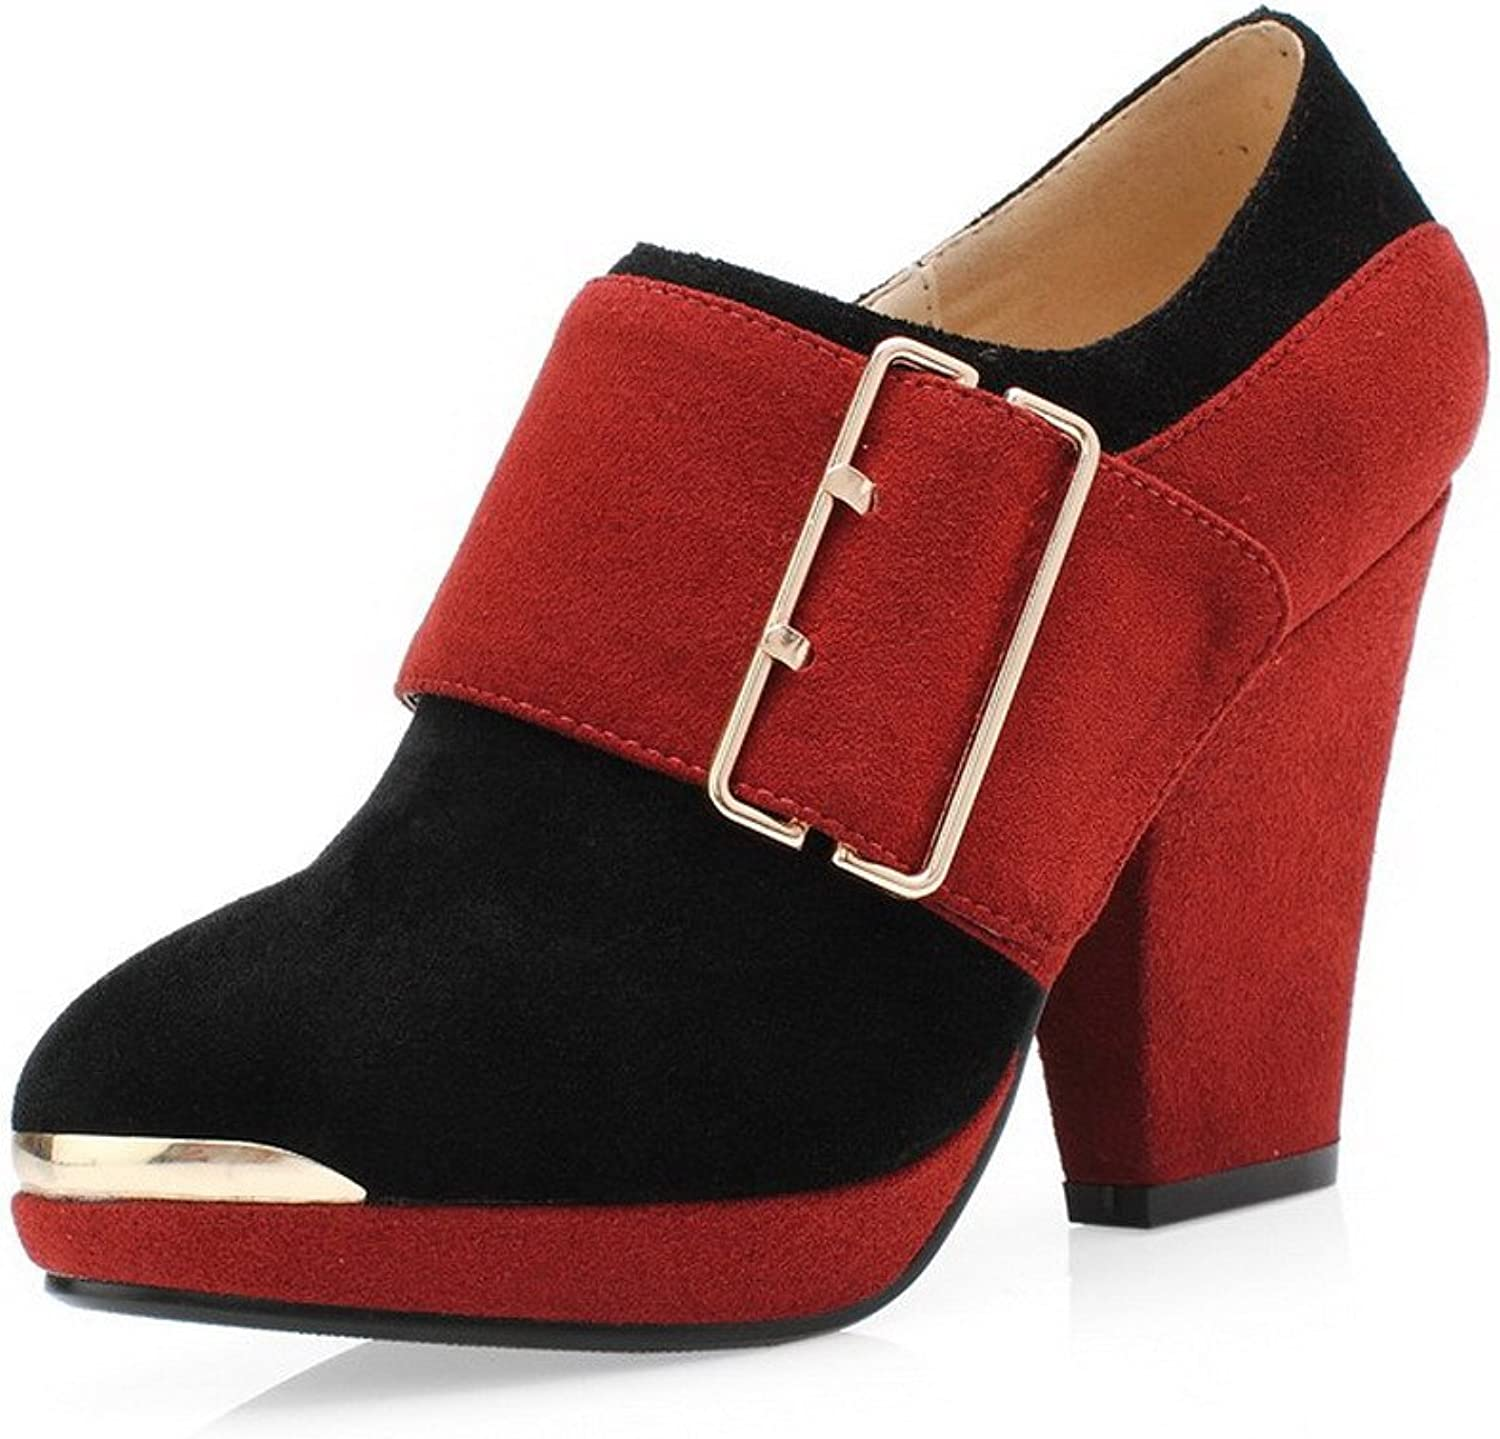 WeenFashion Women's Zipper Cow Imitated Suede High Heels Assorted color Pumps shoes